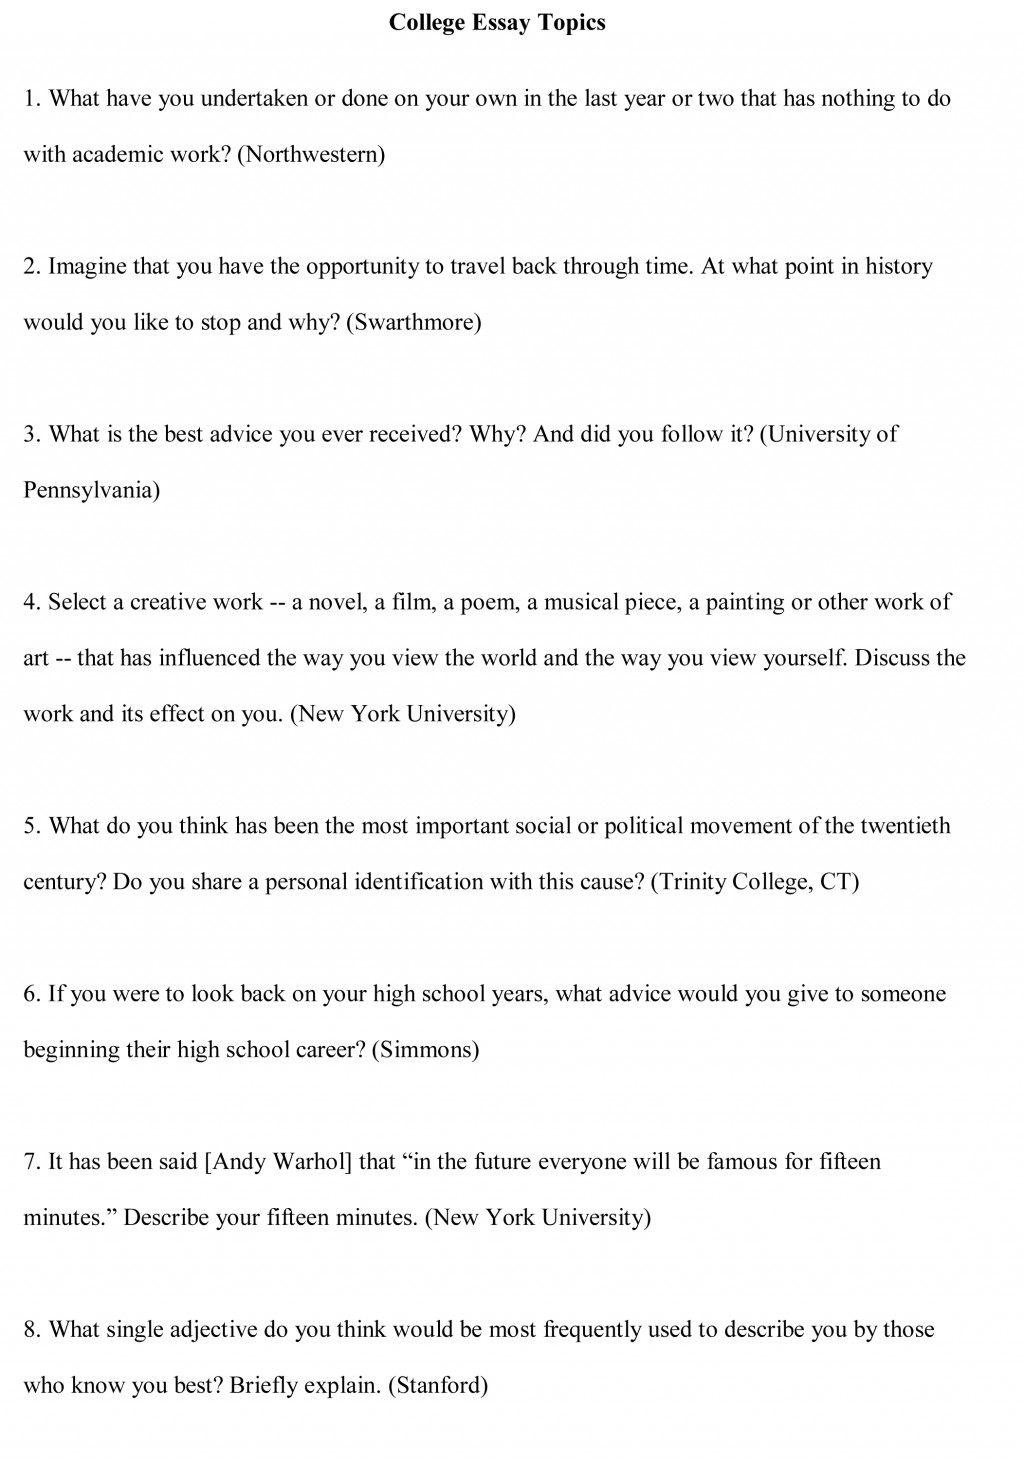 019 College Essay Topics Free Sample1 Example High School Dreaded Experience Large